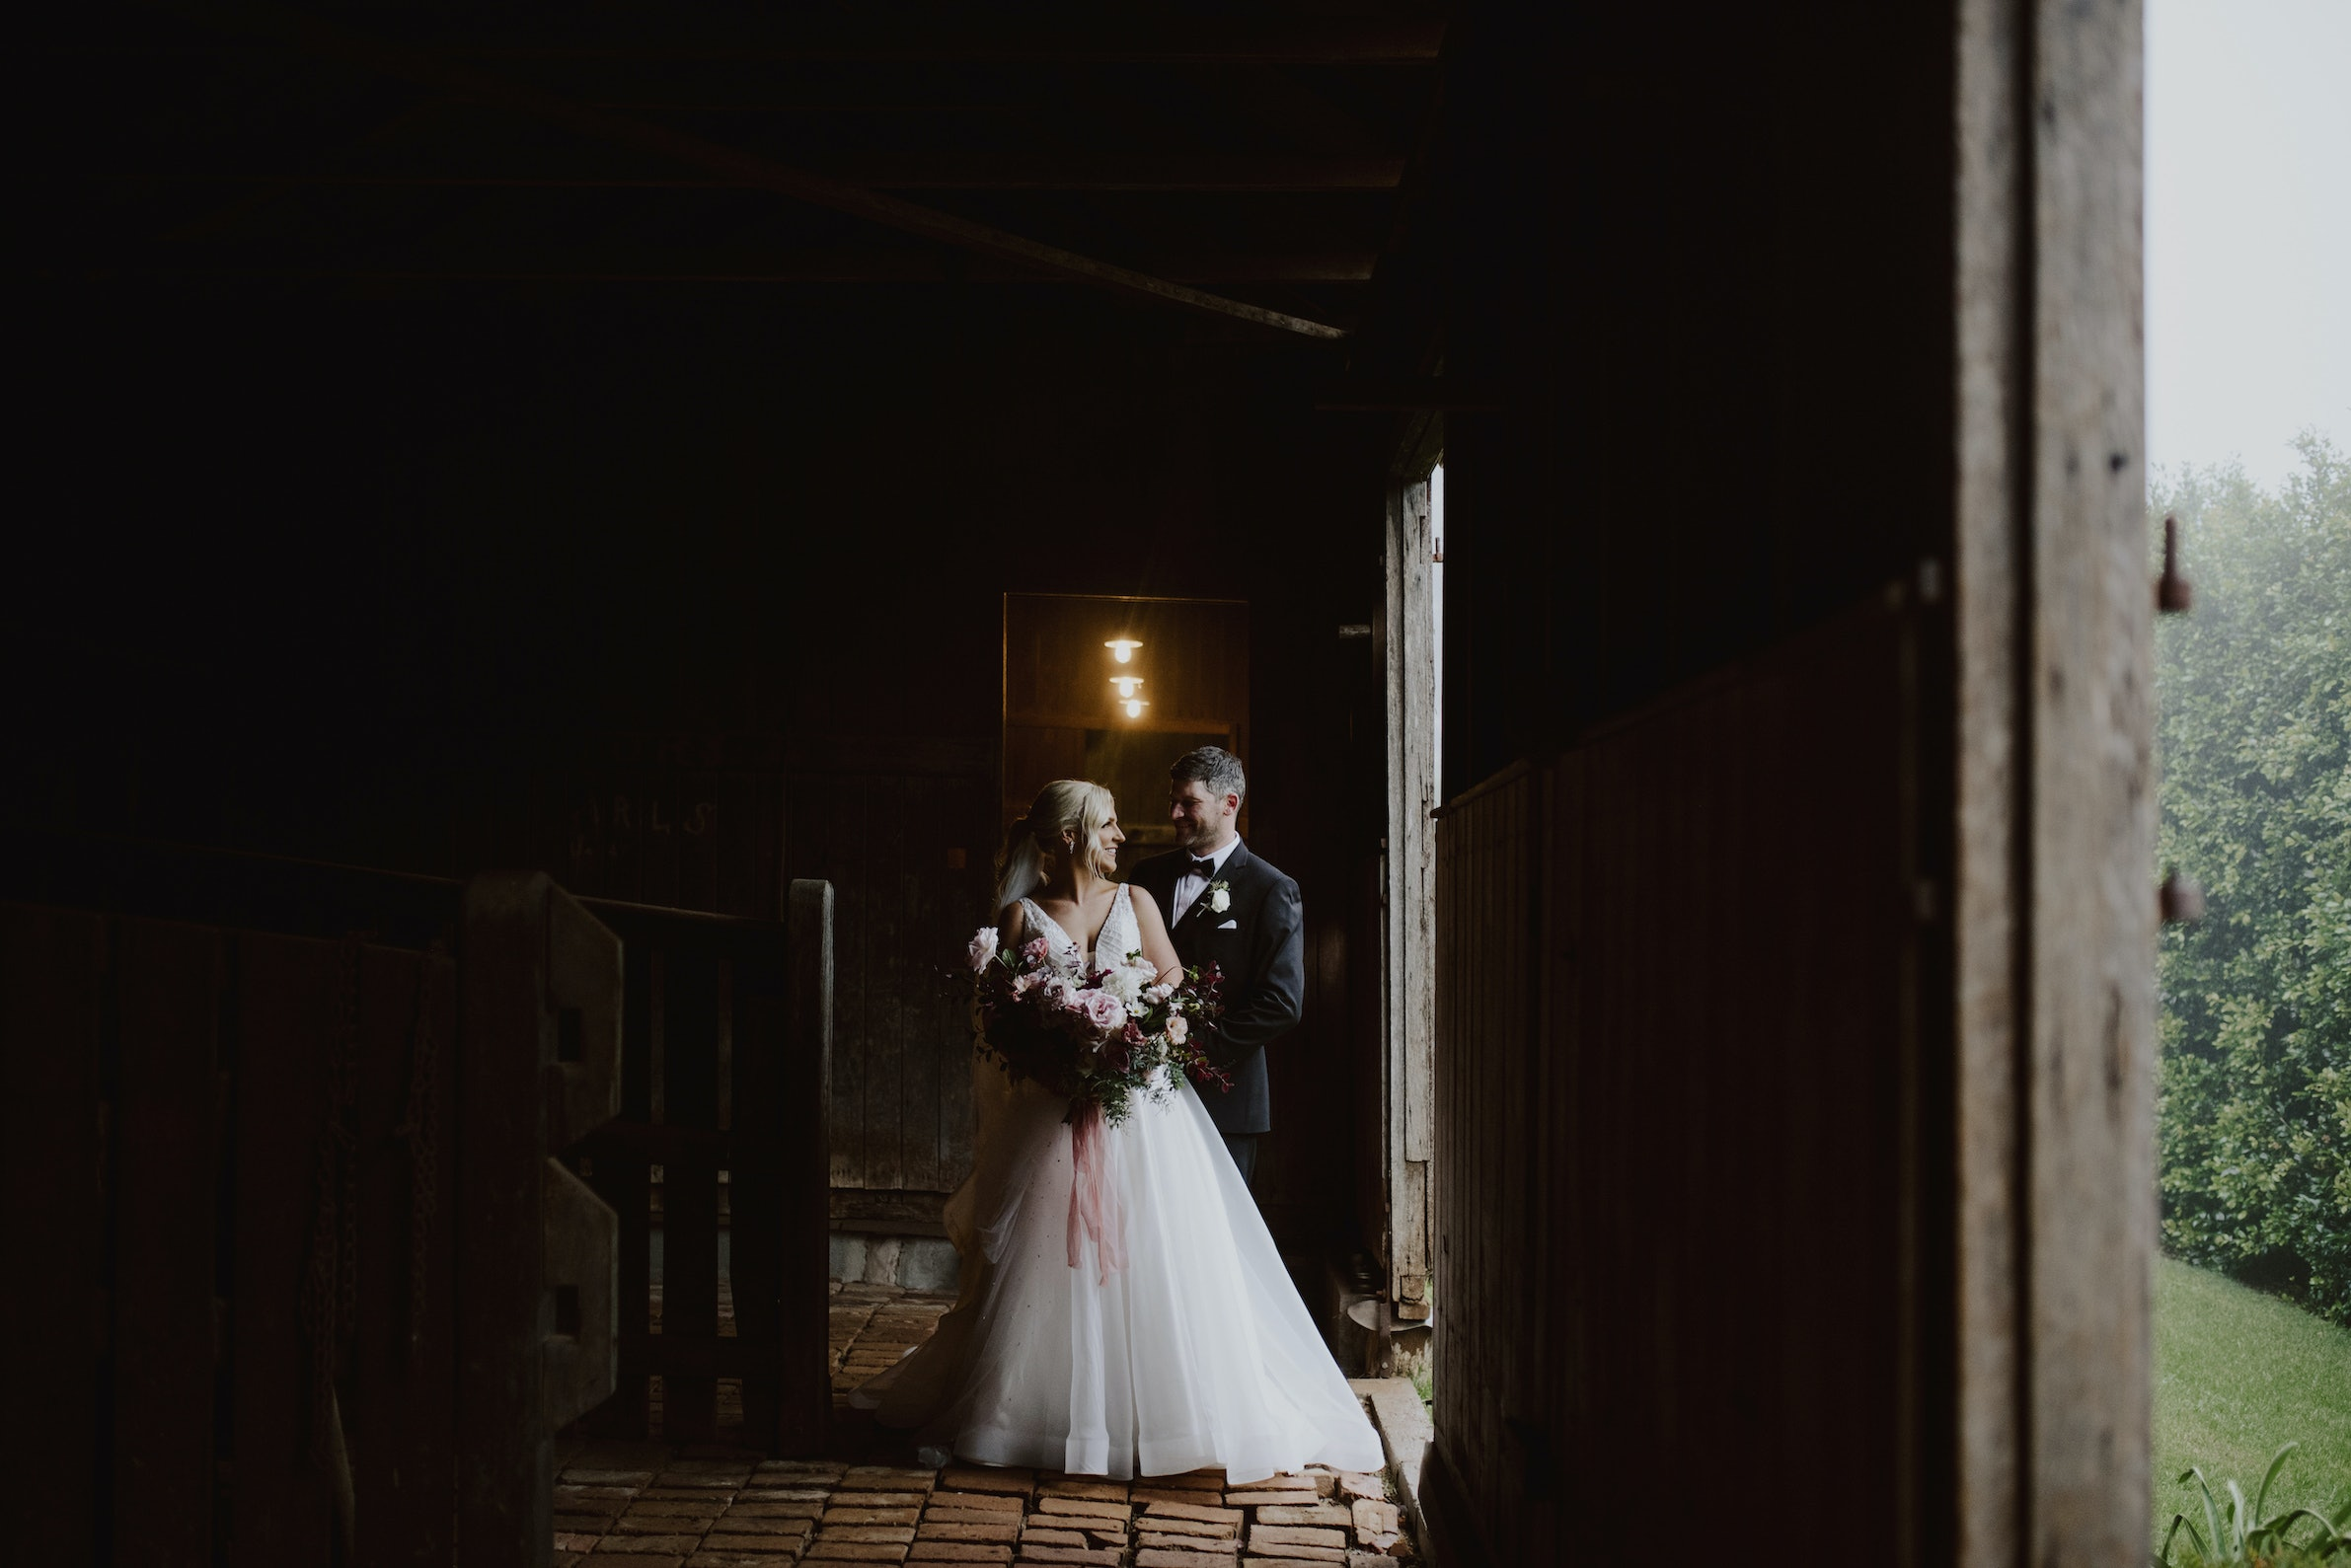 Bride and groom posing together in stables